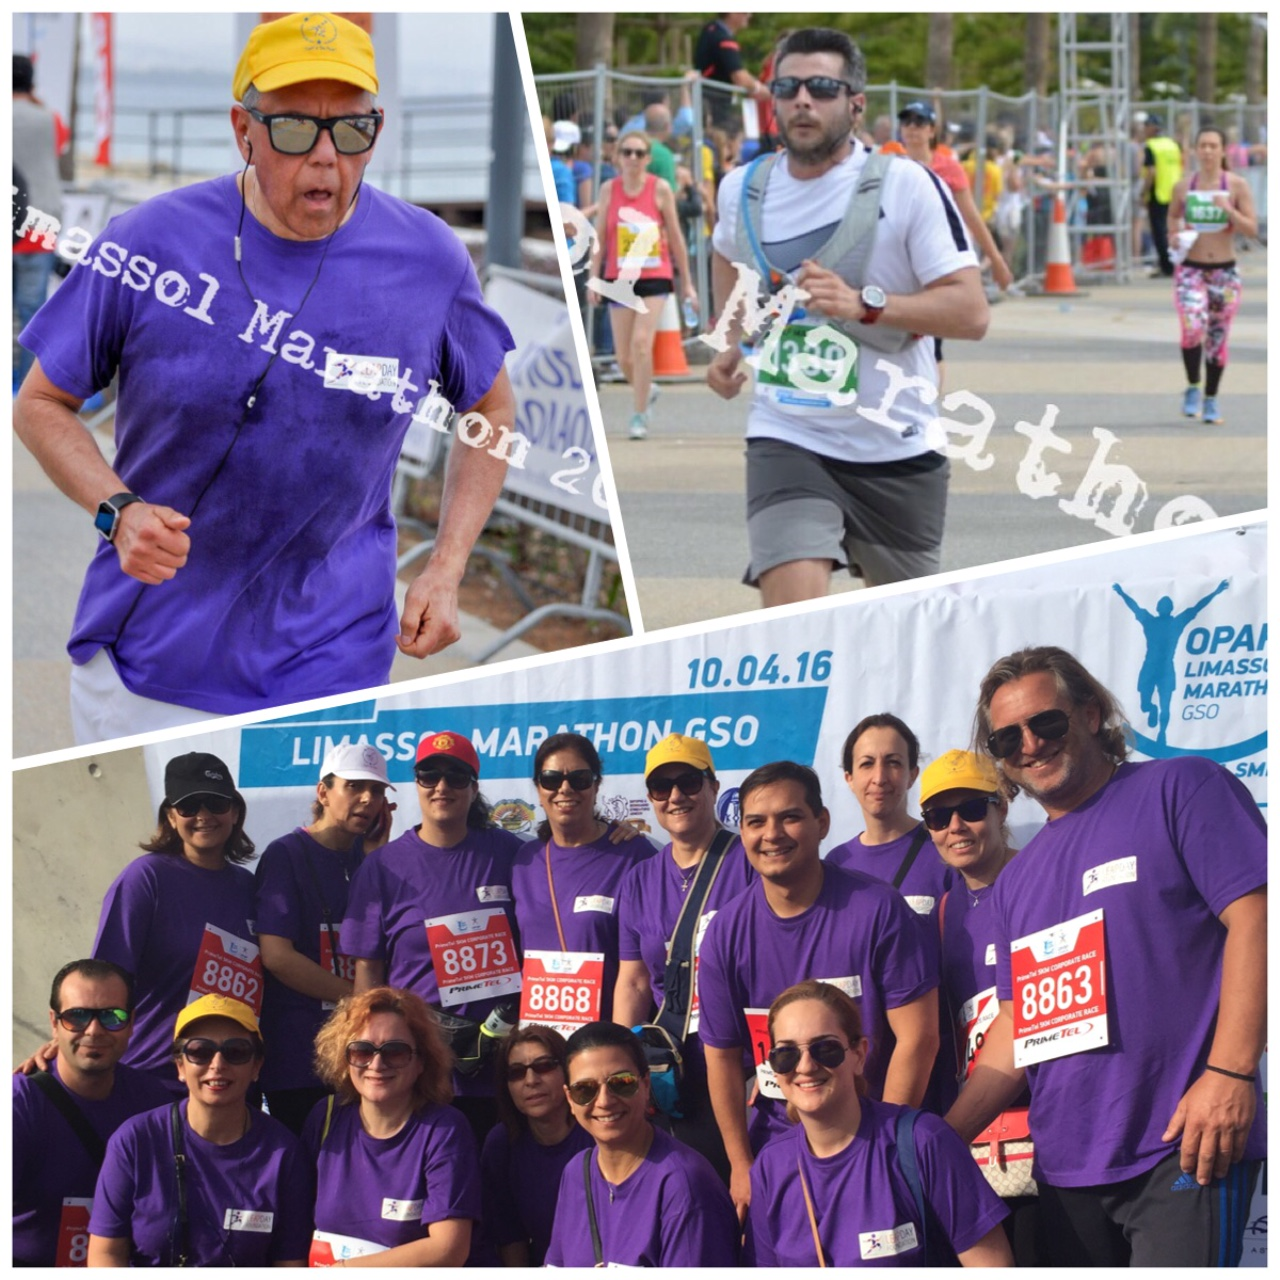 LDF Team participated to the Limassol Marathon 10th April 2016